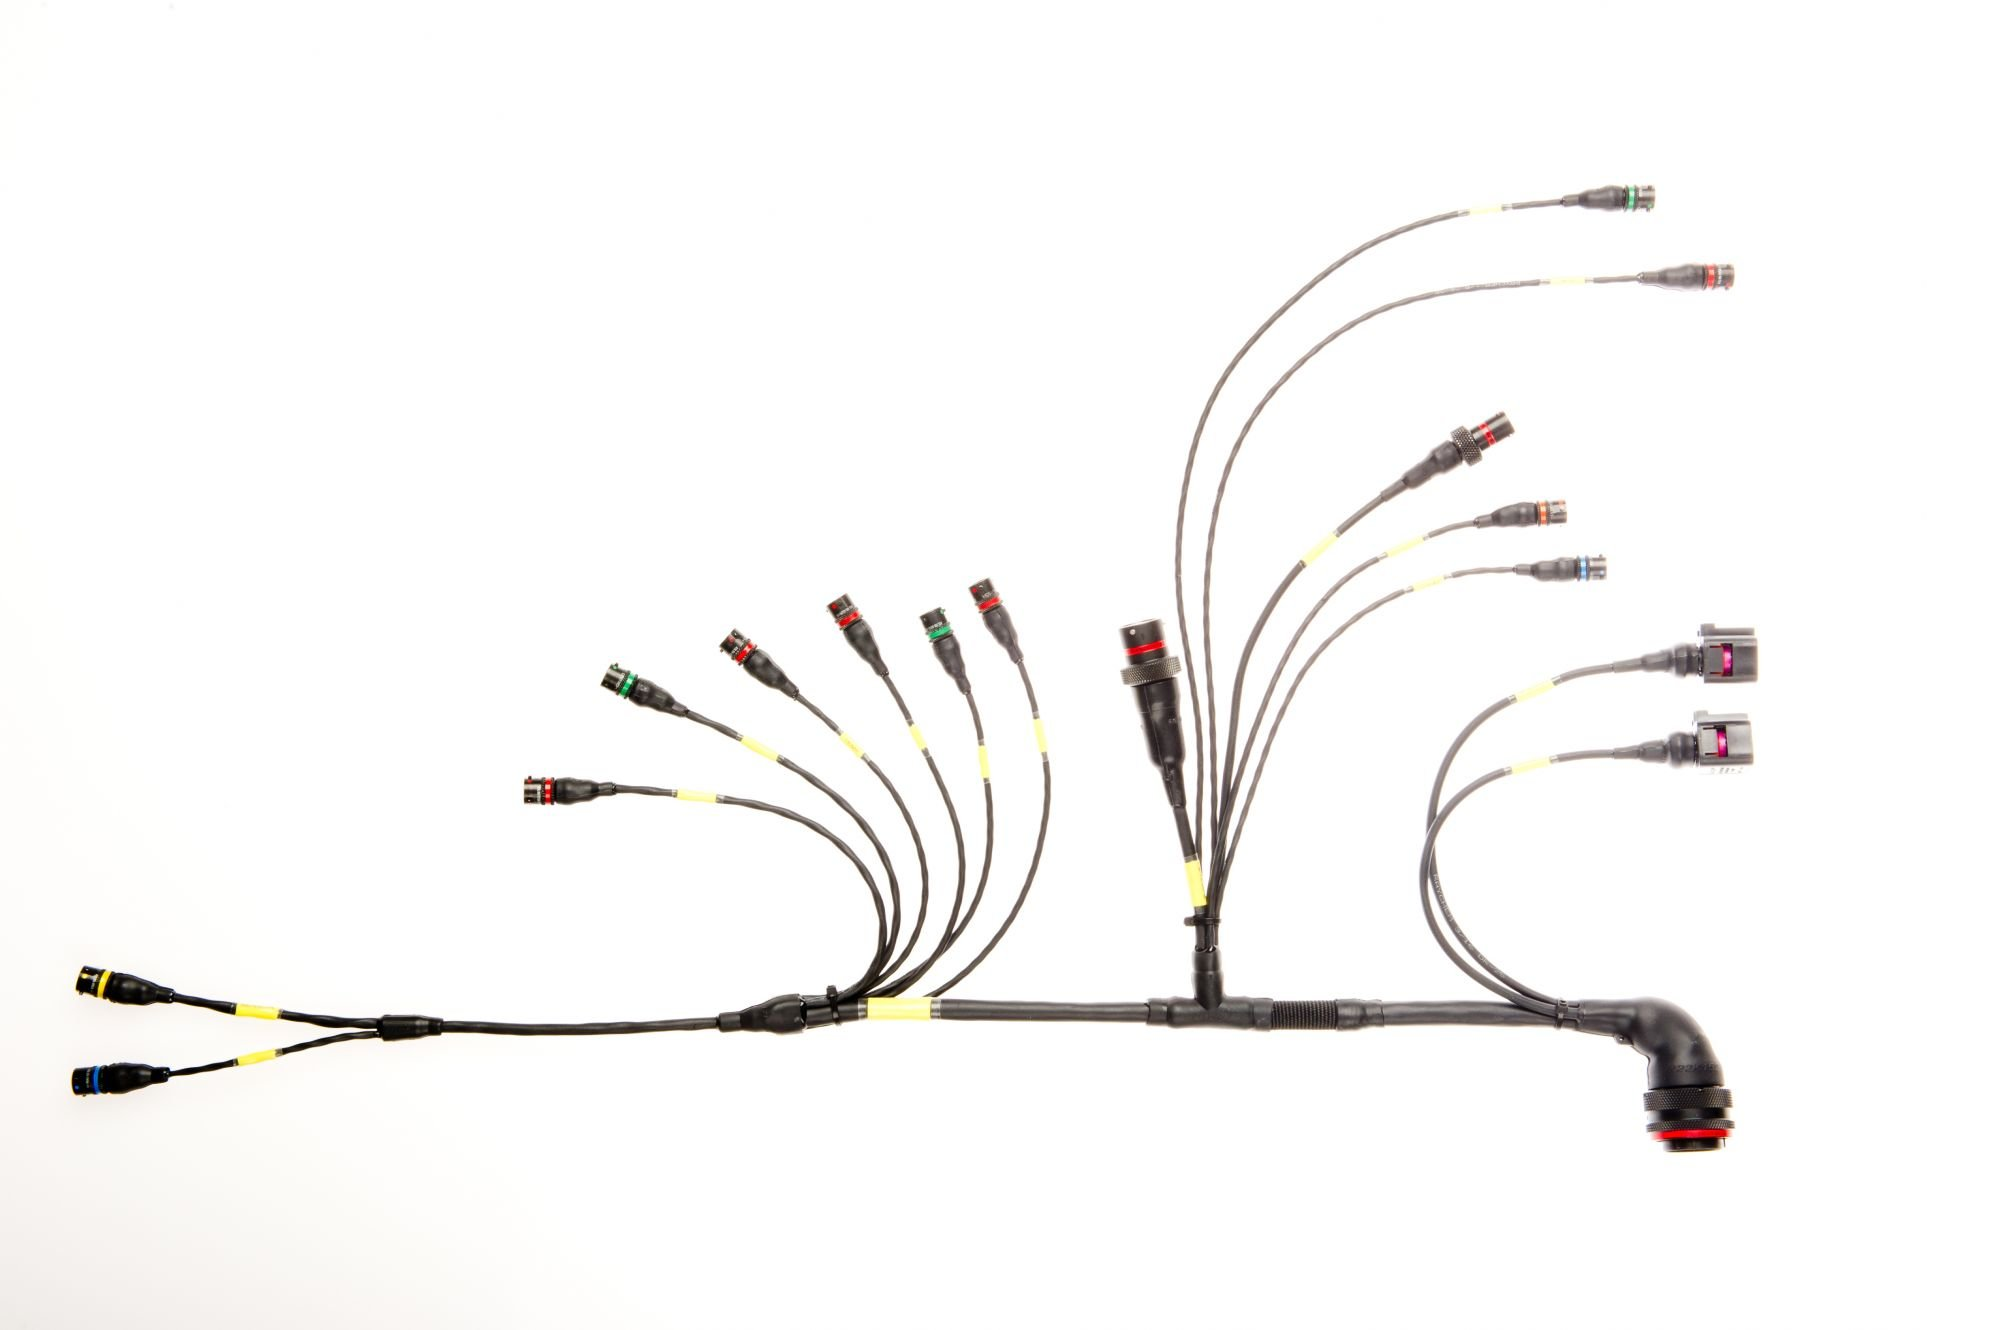 Motorsport Harnessing St Cross Electronics Wiring For Dummies Uk Has Decades Of Experience In Making Cable Assemblies And Looms Some The Toughest Environments World To Offer